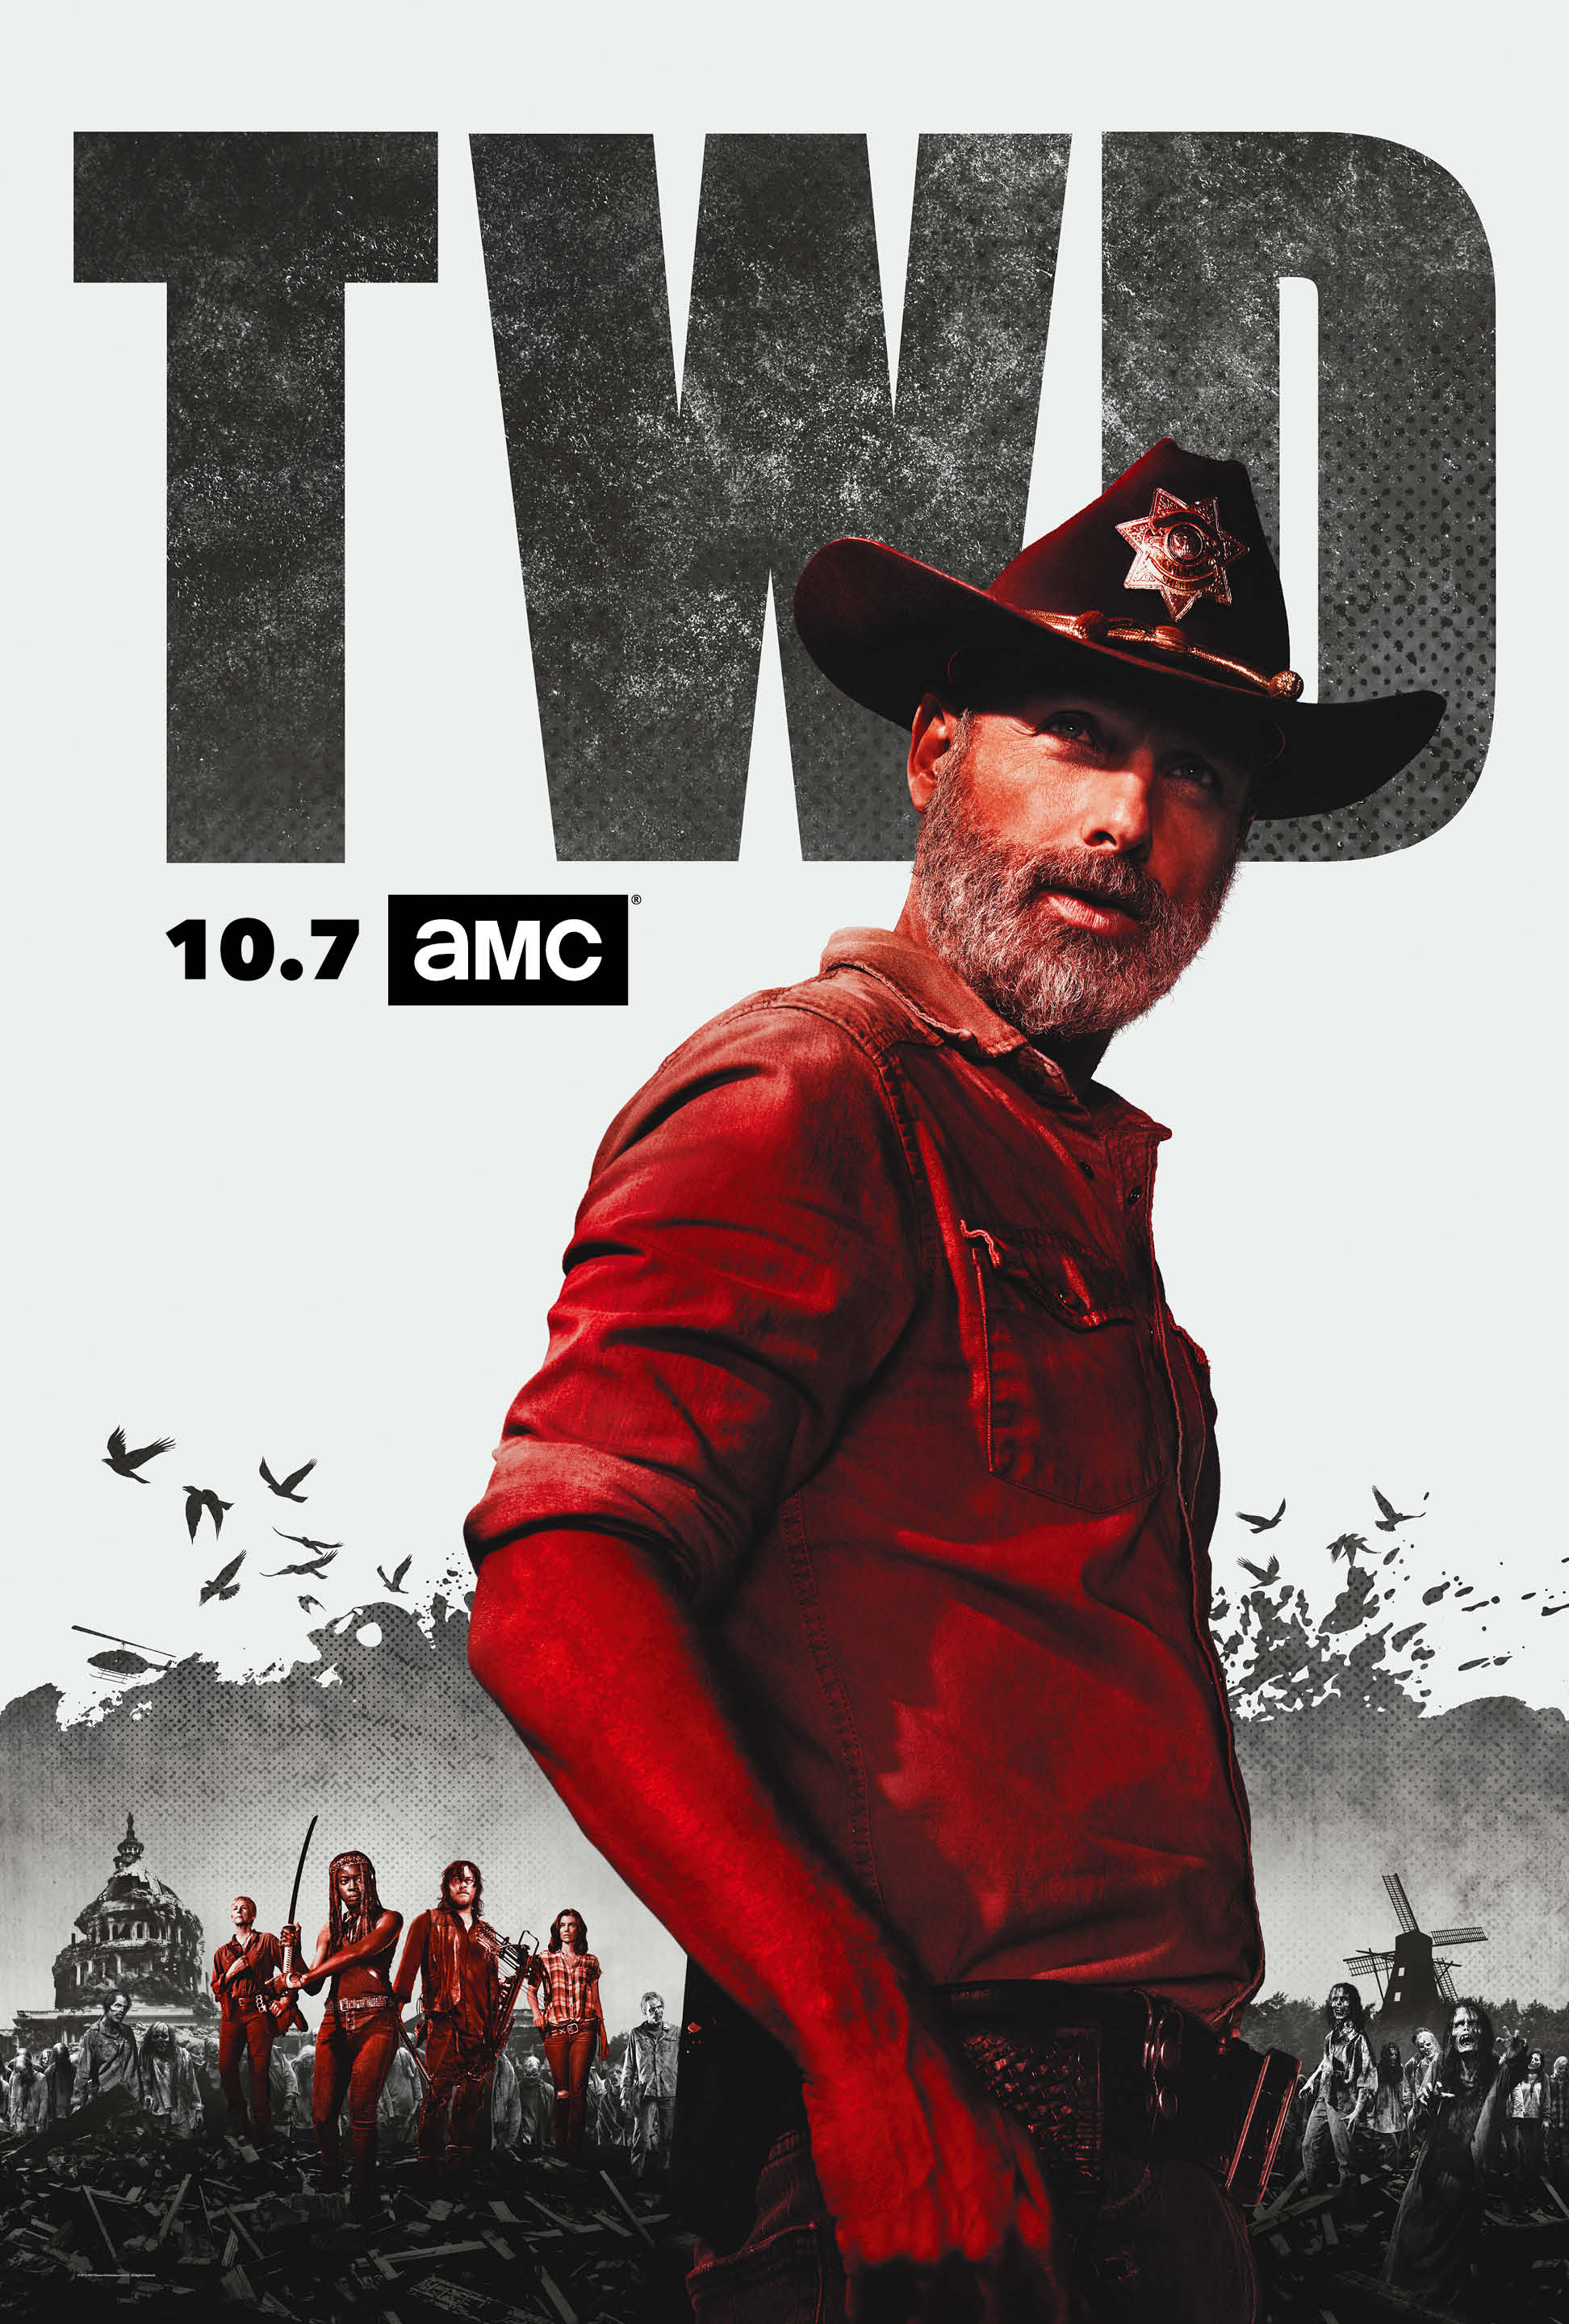 Amc Releases The Walking Dead Season 9 Key Art And Images